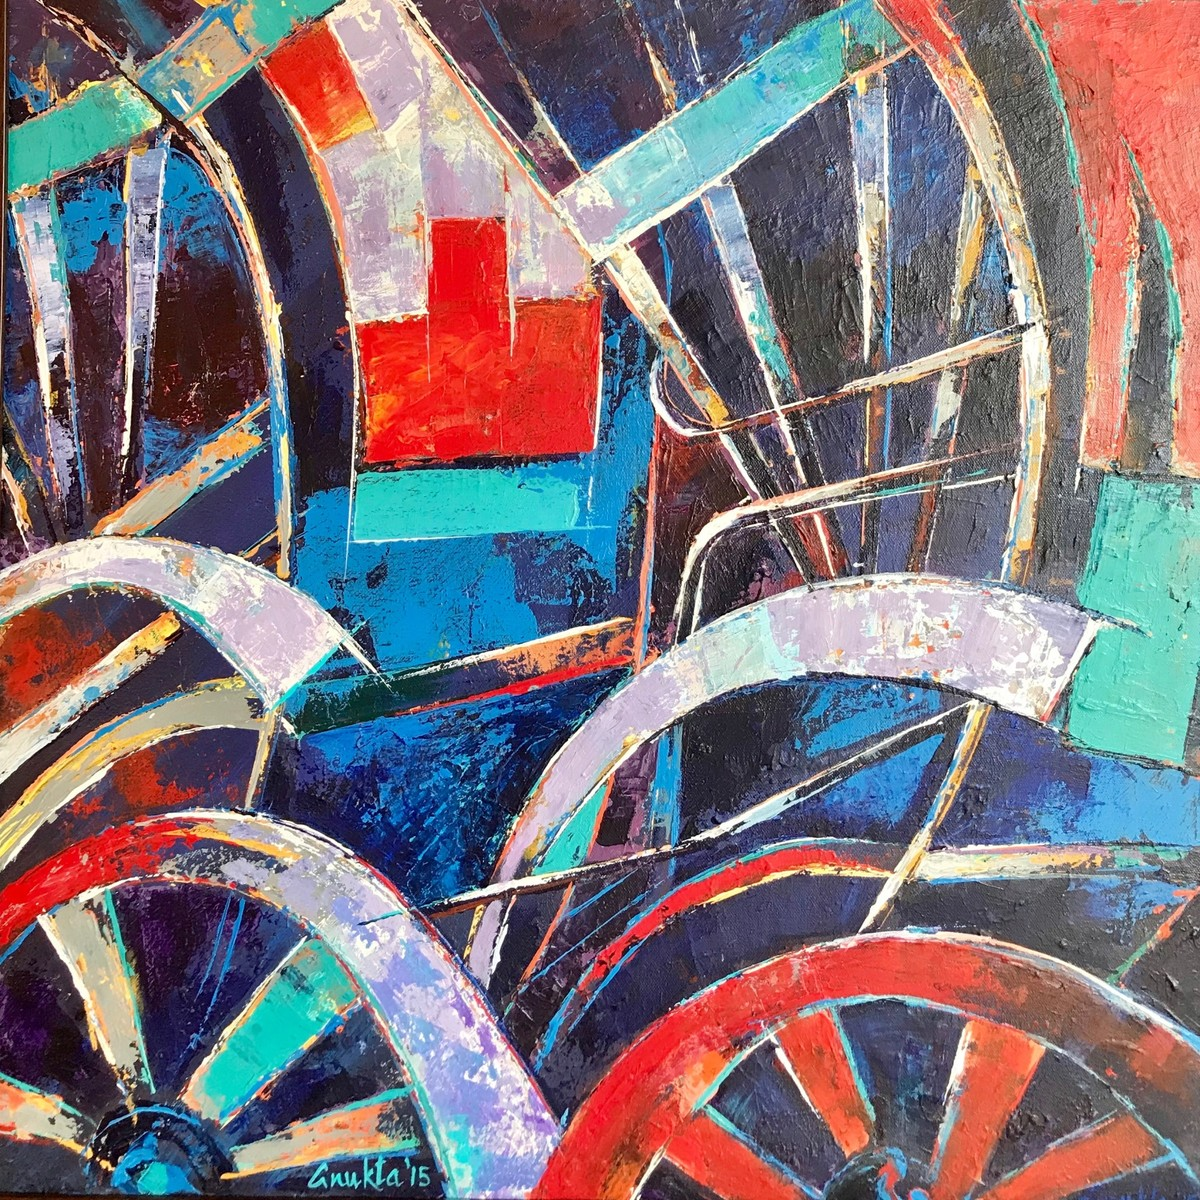 Rickshaw - Abstract Digital Print by Anukta Mukherjee Ghosh,Abstract